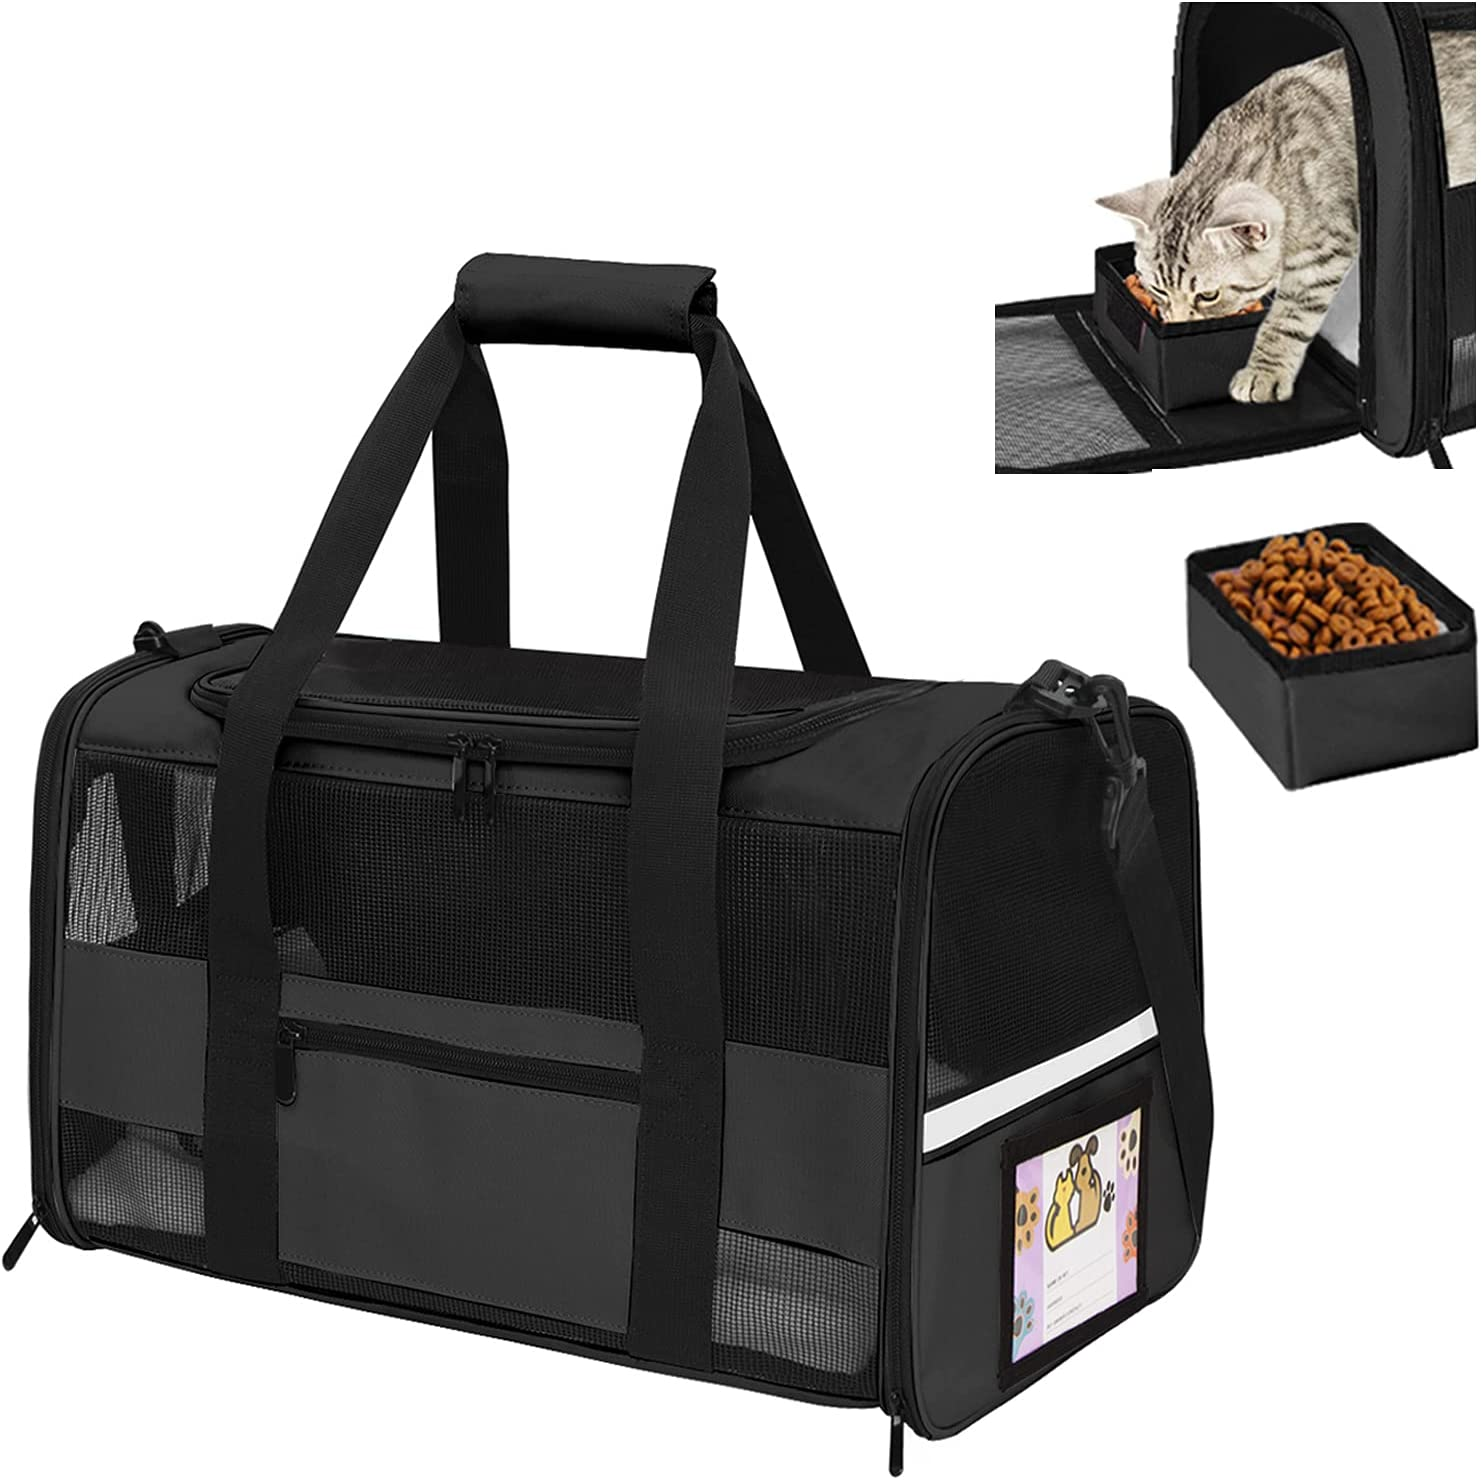 Sapine Pet Carrier Airline Approved ID Card Refl SEAL limited Same day shipping product with Bowl